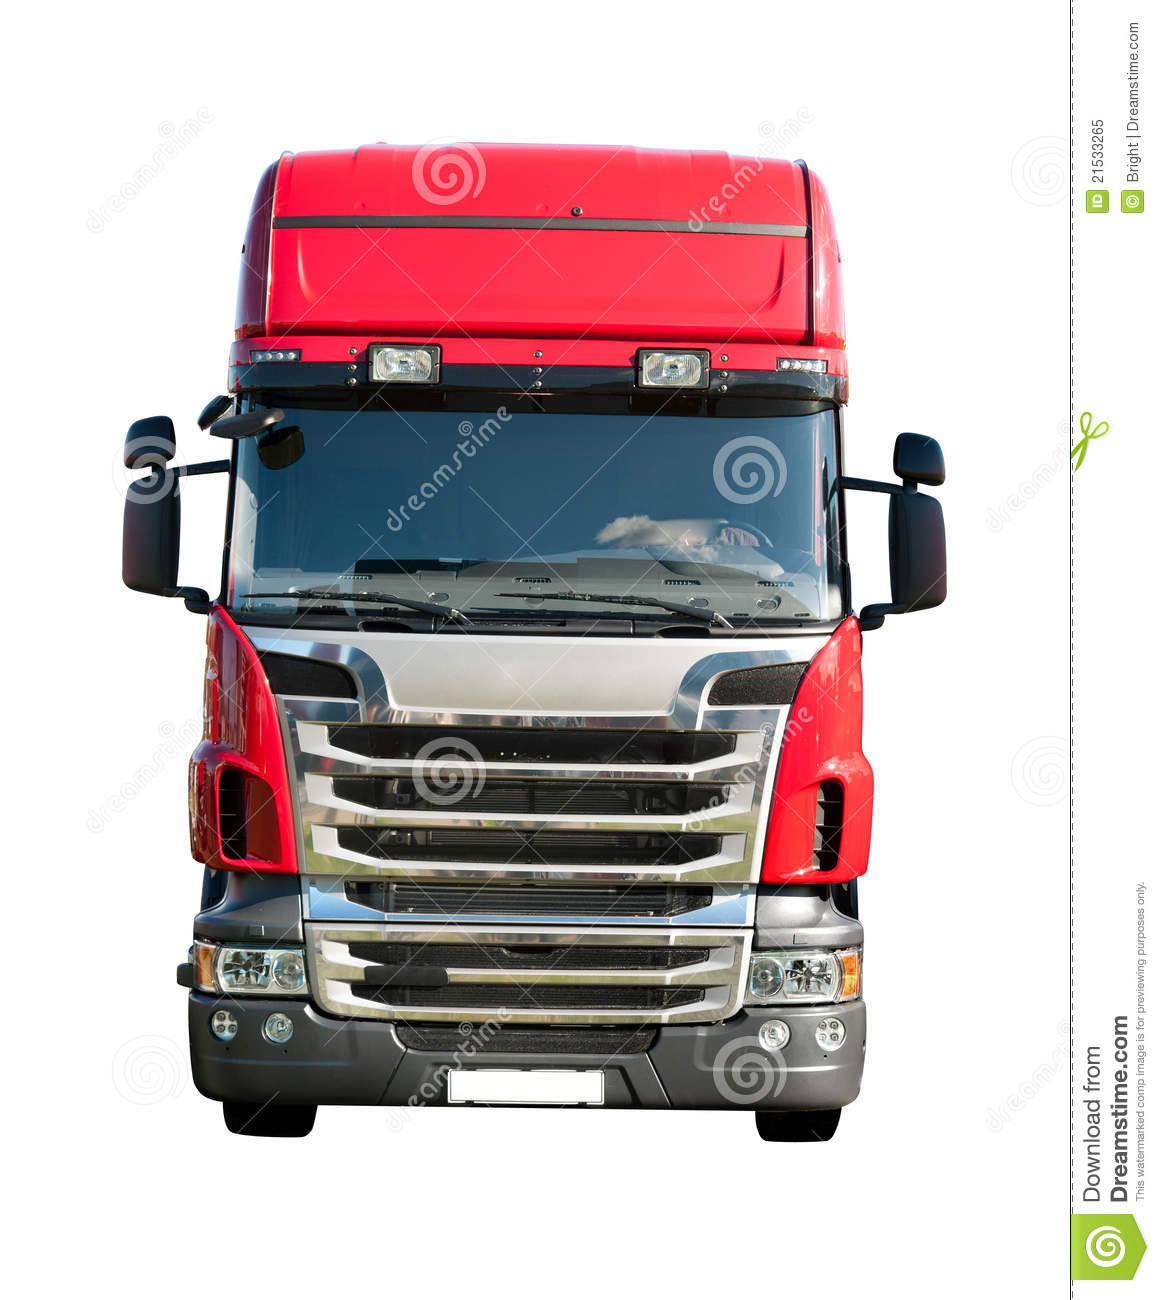 Truck Cabin Royalty Free Stock Photo - Image: 21533265